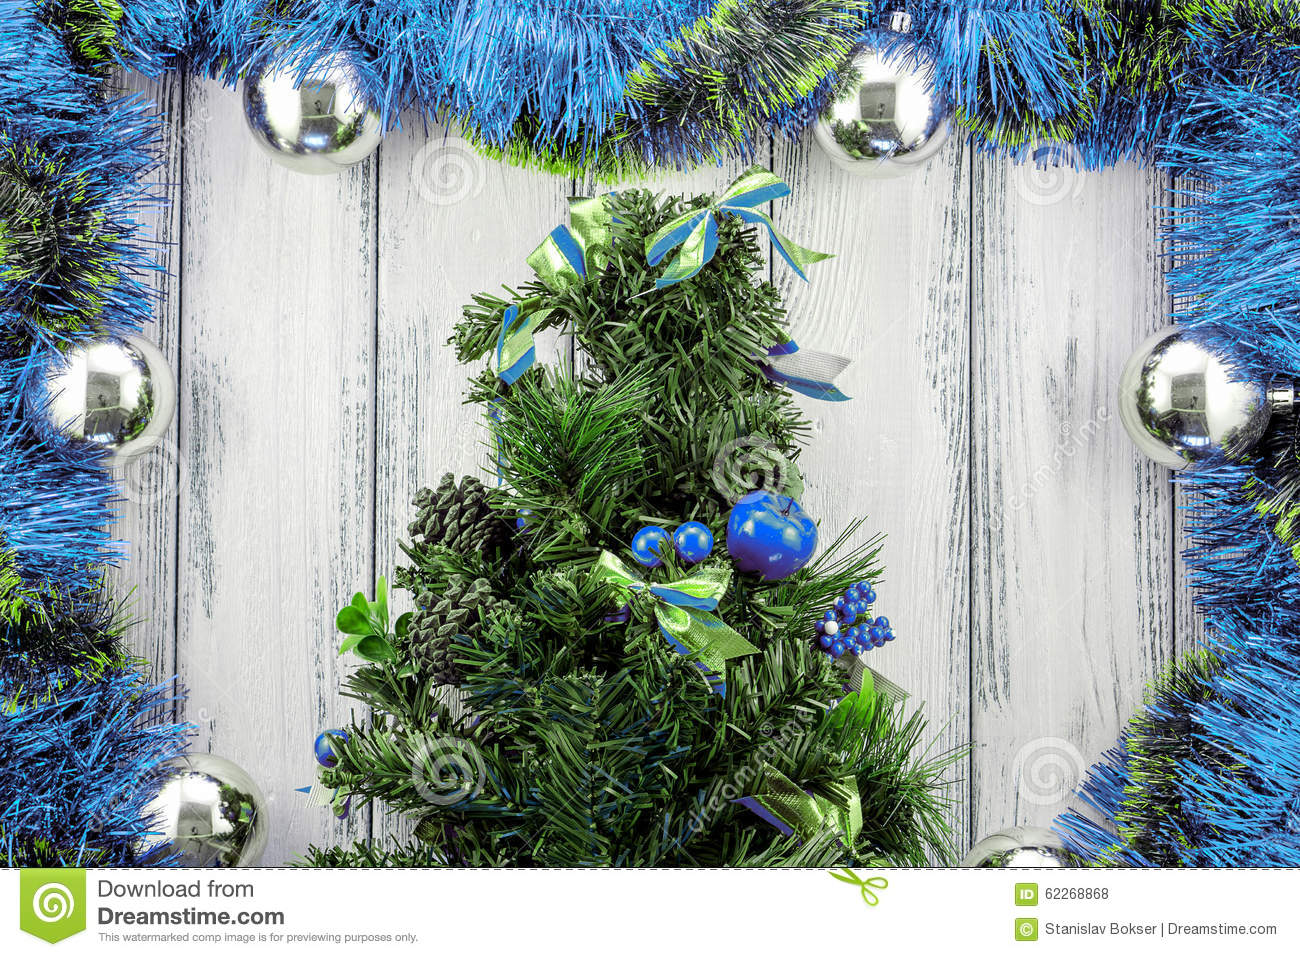 Blue green christmas tree decorations - New Year Theme Christmas Tree With Blue And Green Decoration And Silver Balls On White Stylized